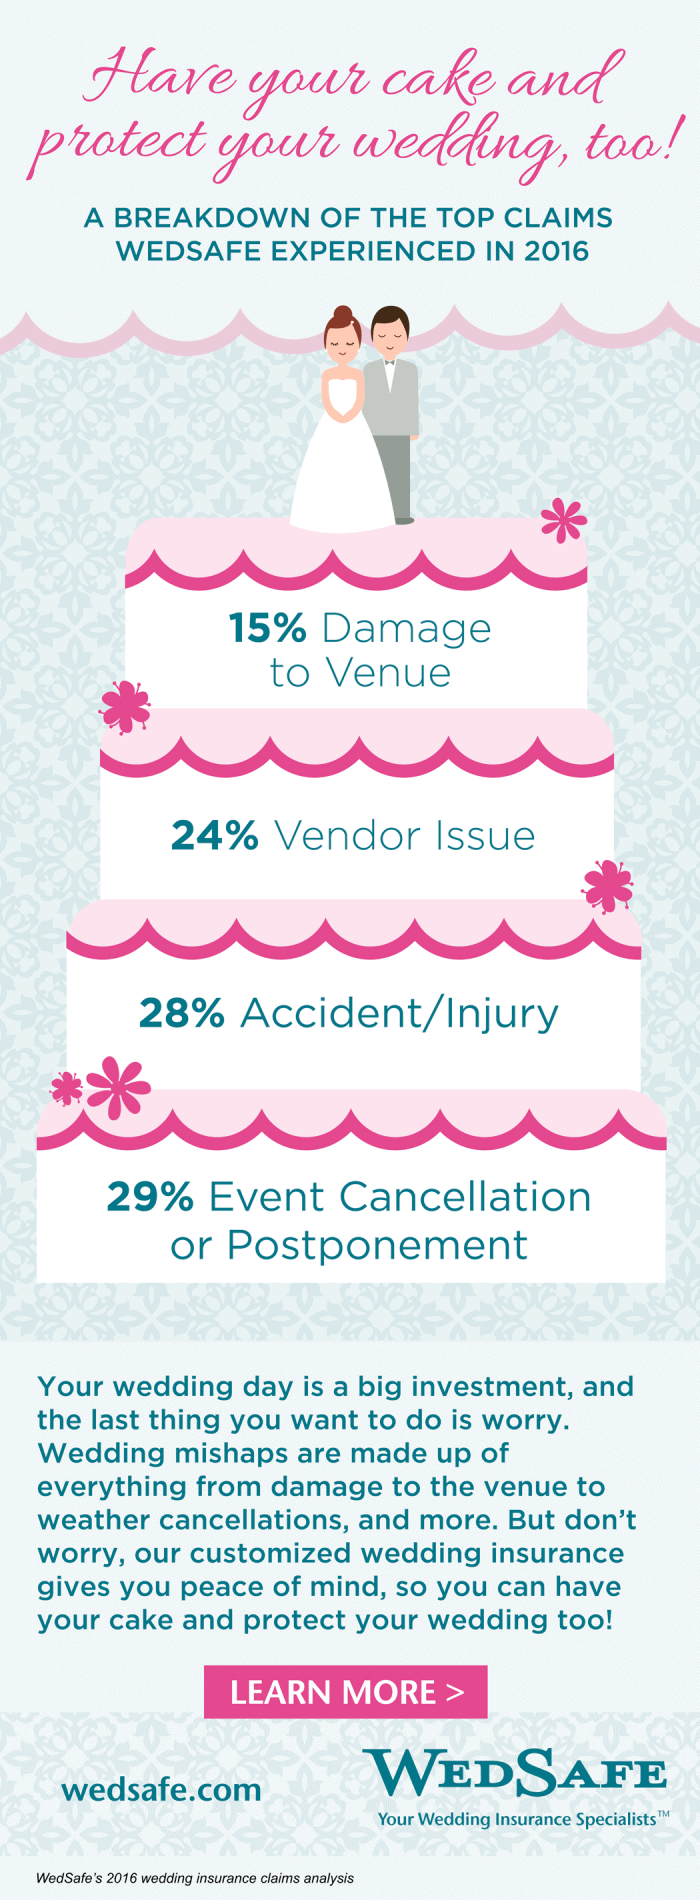 These Are The Top Mishaps That Ruin Weddings